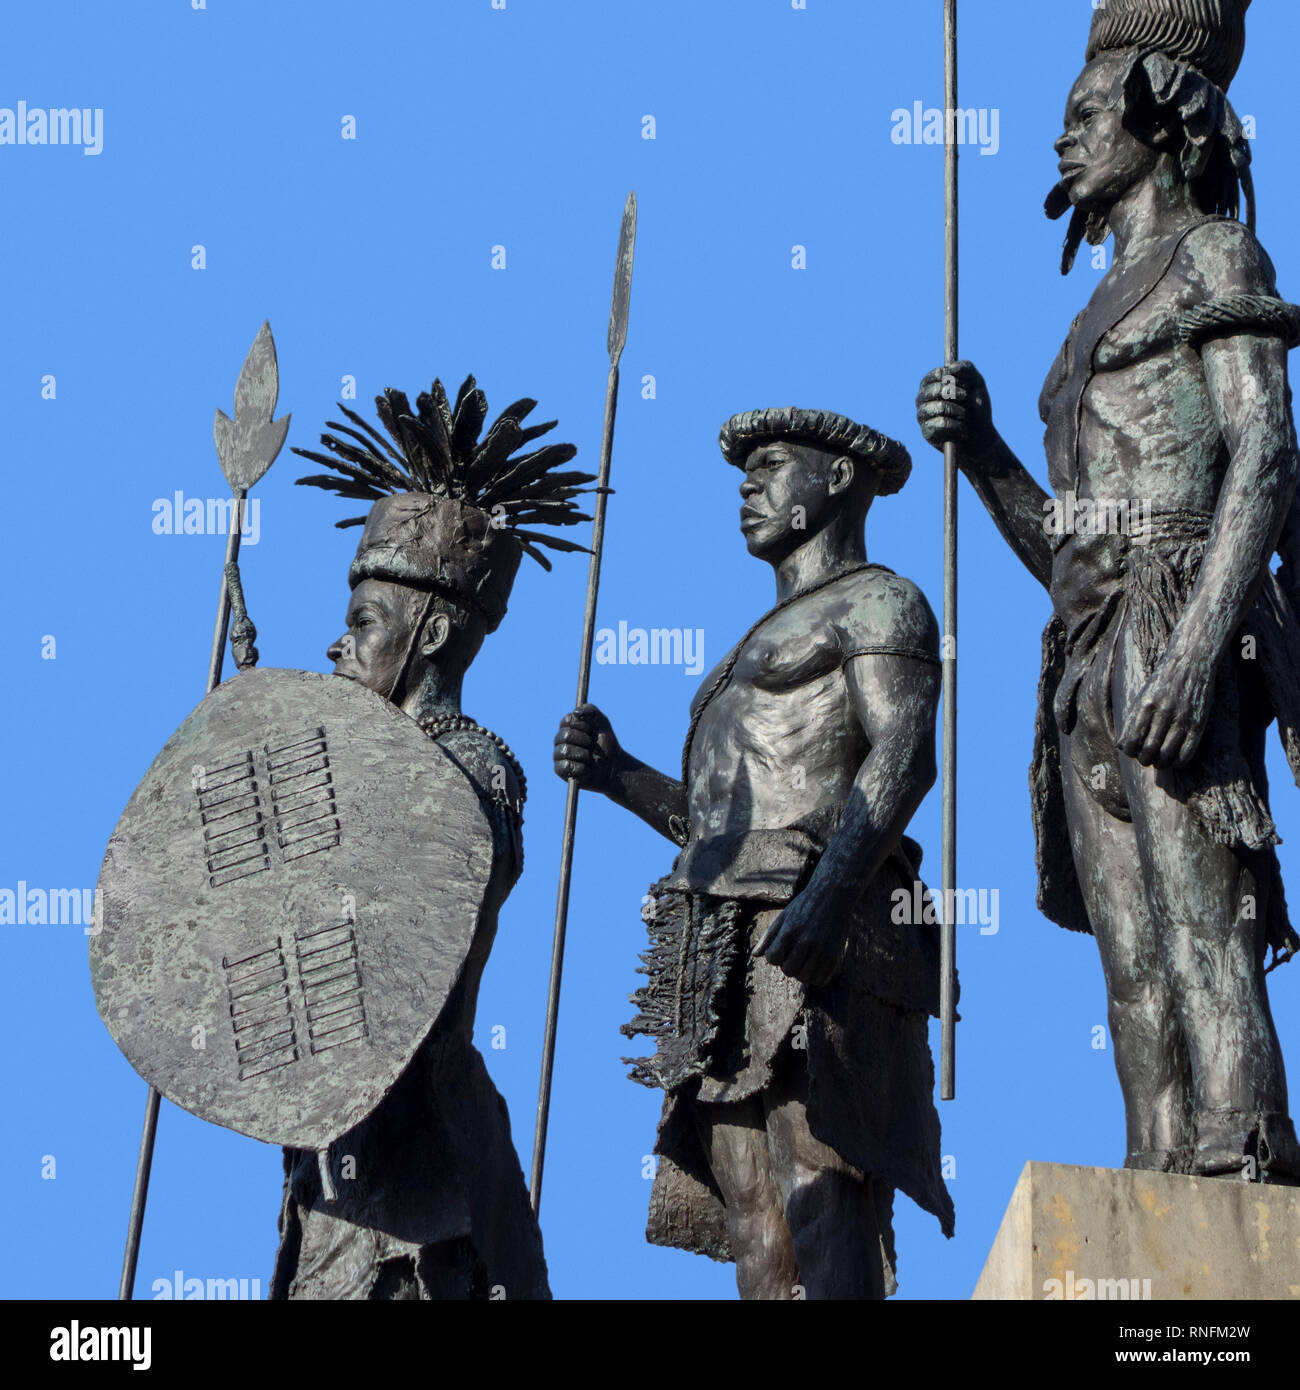 Sculpture group The Congo, I Presume by Tom Frantzen at the AfricaMuseum / Royal Museum for Central Africa at Tervuren, Flemish Brabant, Belgium - Stock Image